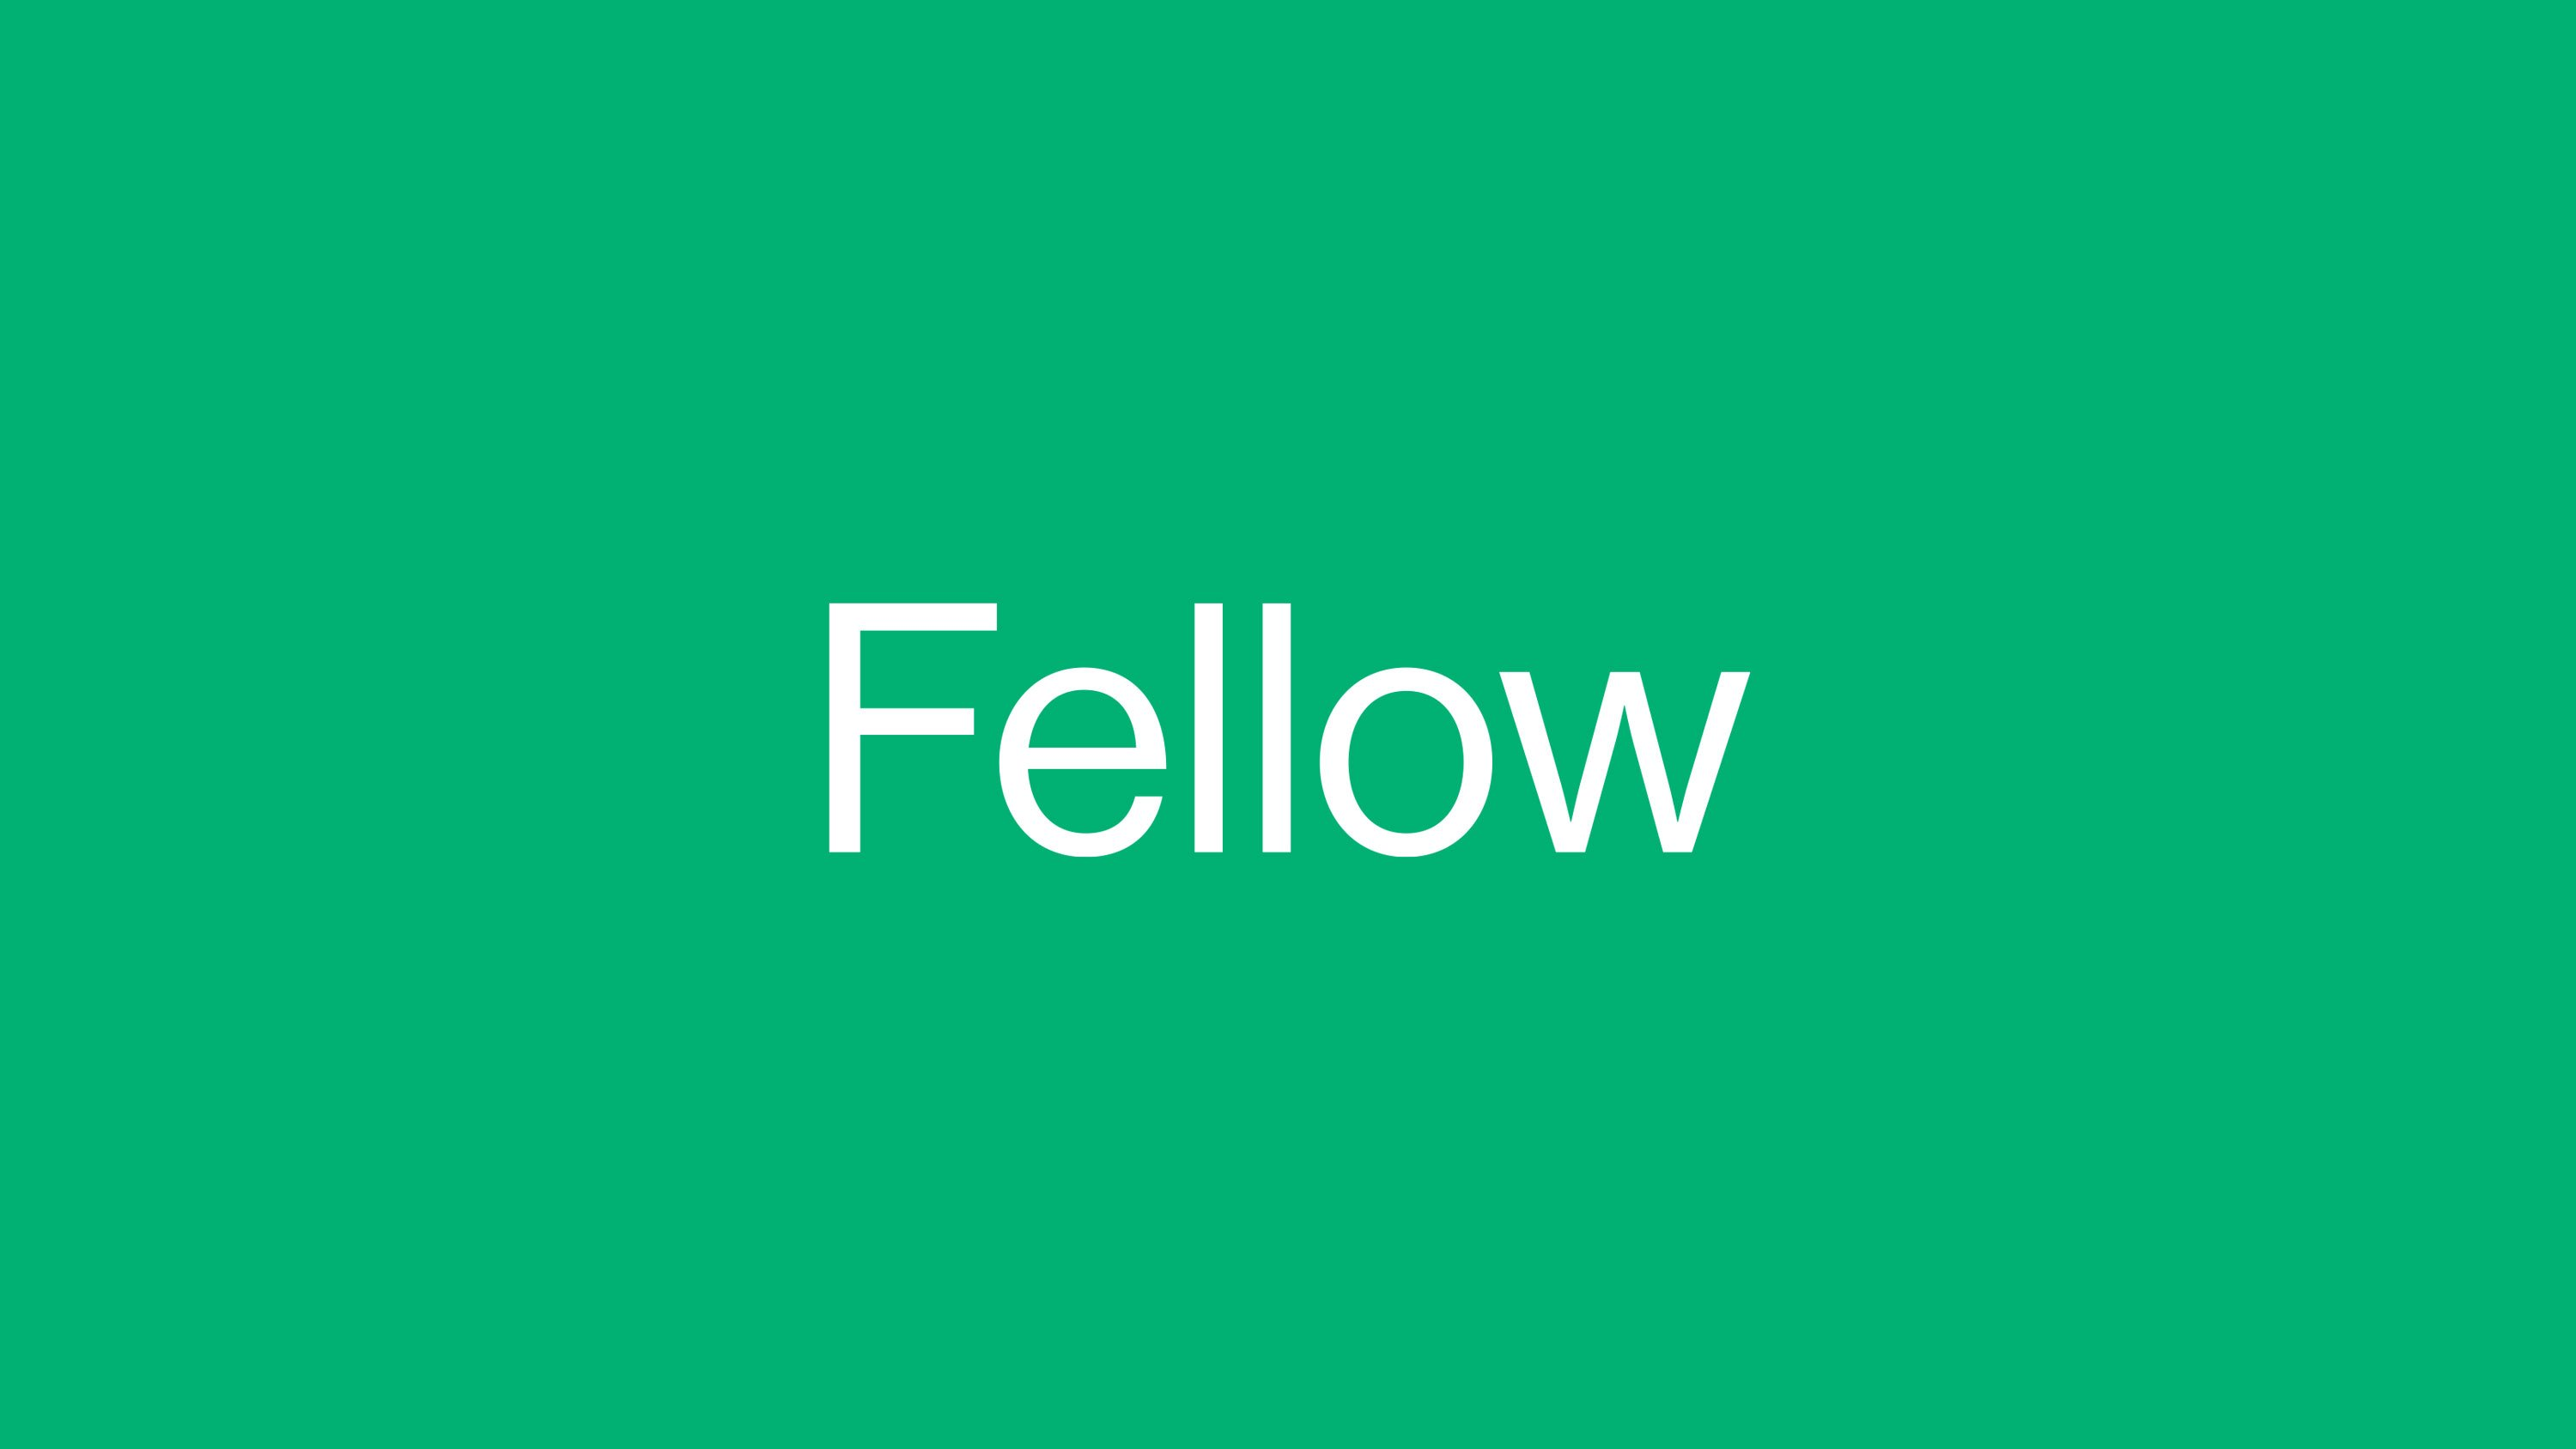 Fellow logo in white on green background, designed by RoAndCo